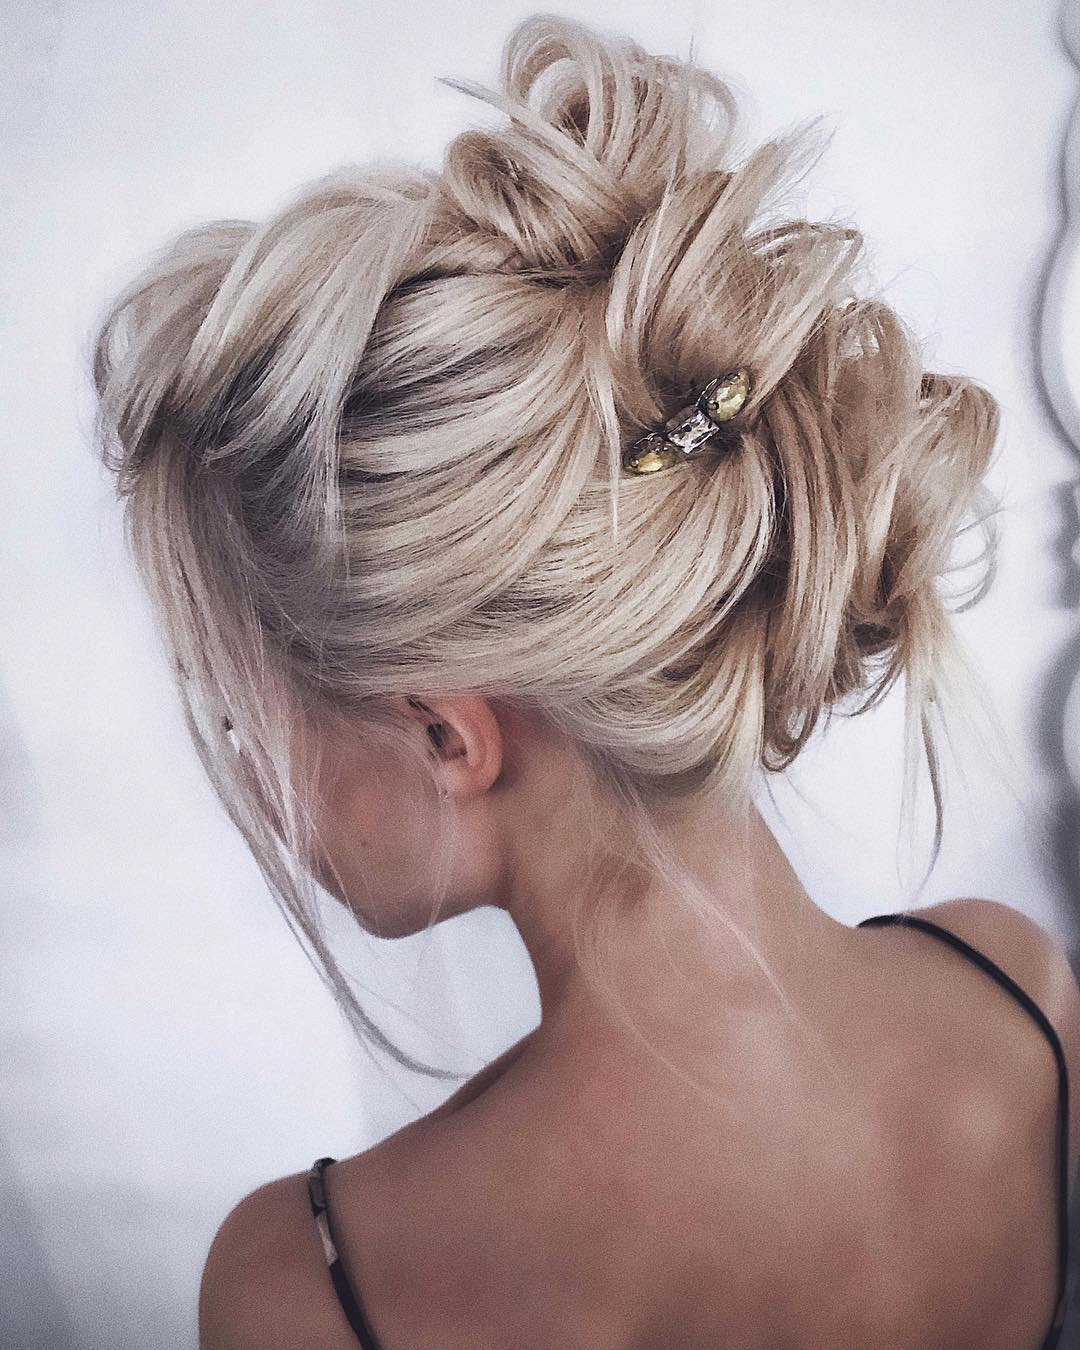 9. Clipped Updo